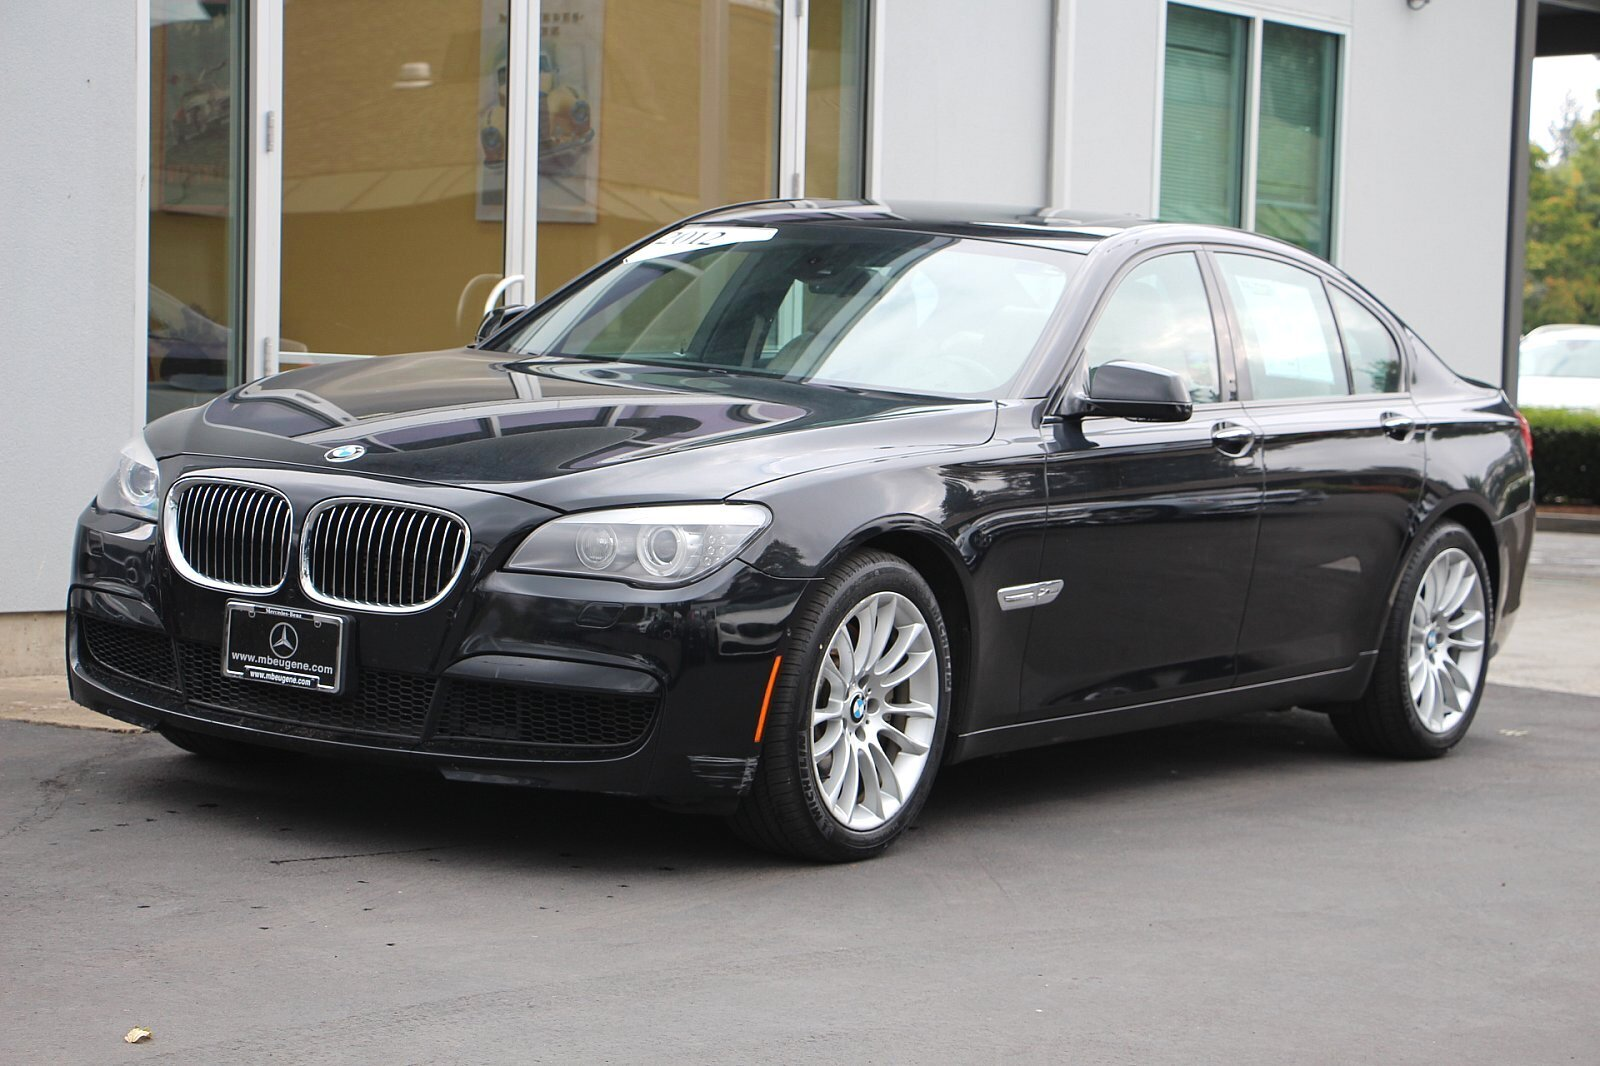 Pre-Owned 2012 BMW 7 Series 750i xDrive With Navigation & AWD